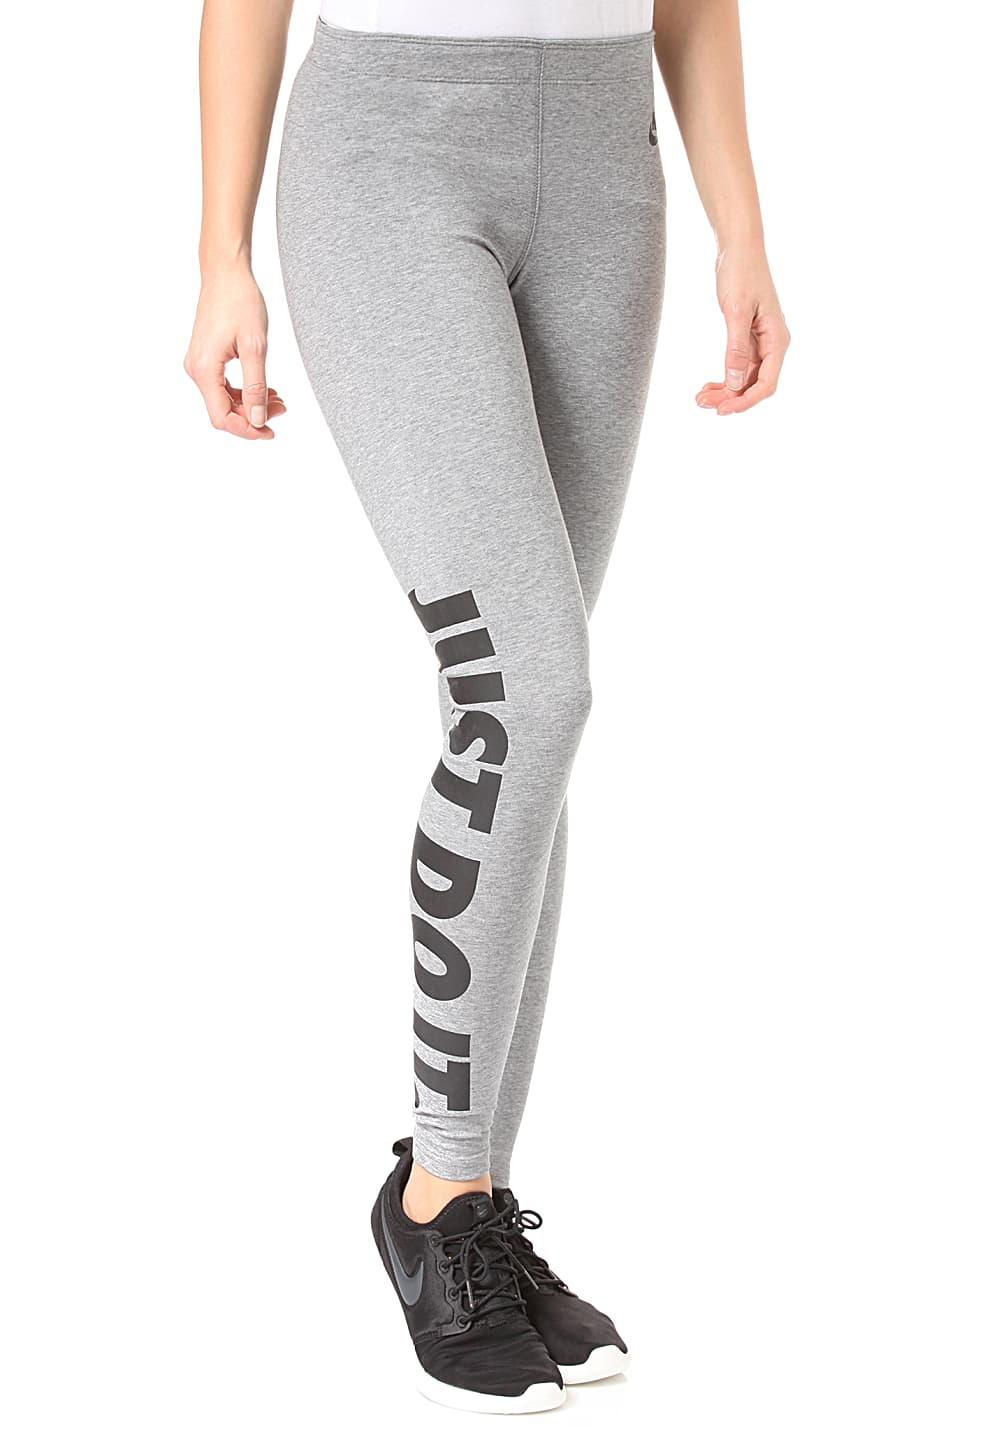 ce950d2663c5ab Next. -13%. This product is currently out of stock. NIKE SPORTSWEAR. Leg A See  JDI - Leggings for Women